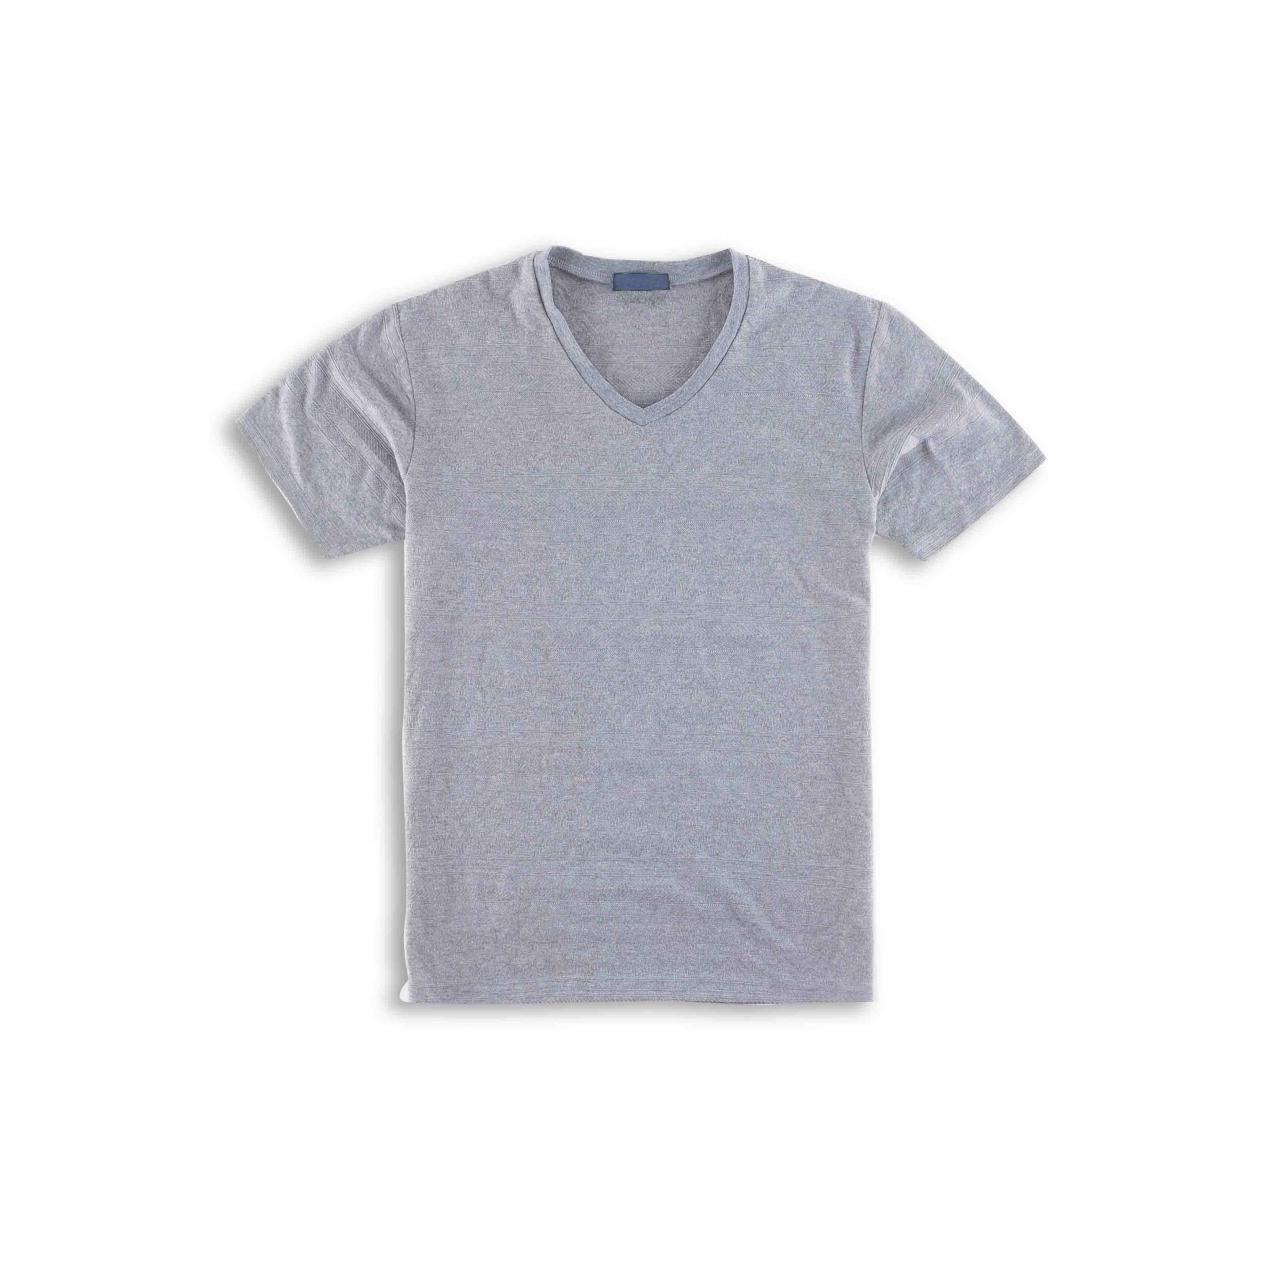 Quality clothing. clothes Men's Short Sleeve T-shirt for sale